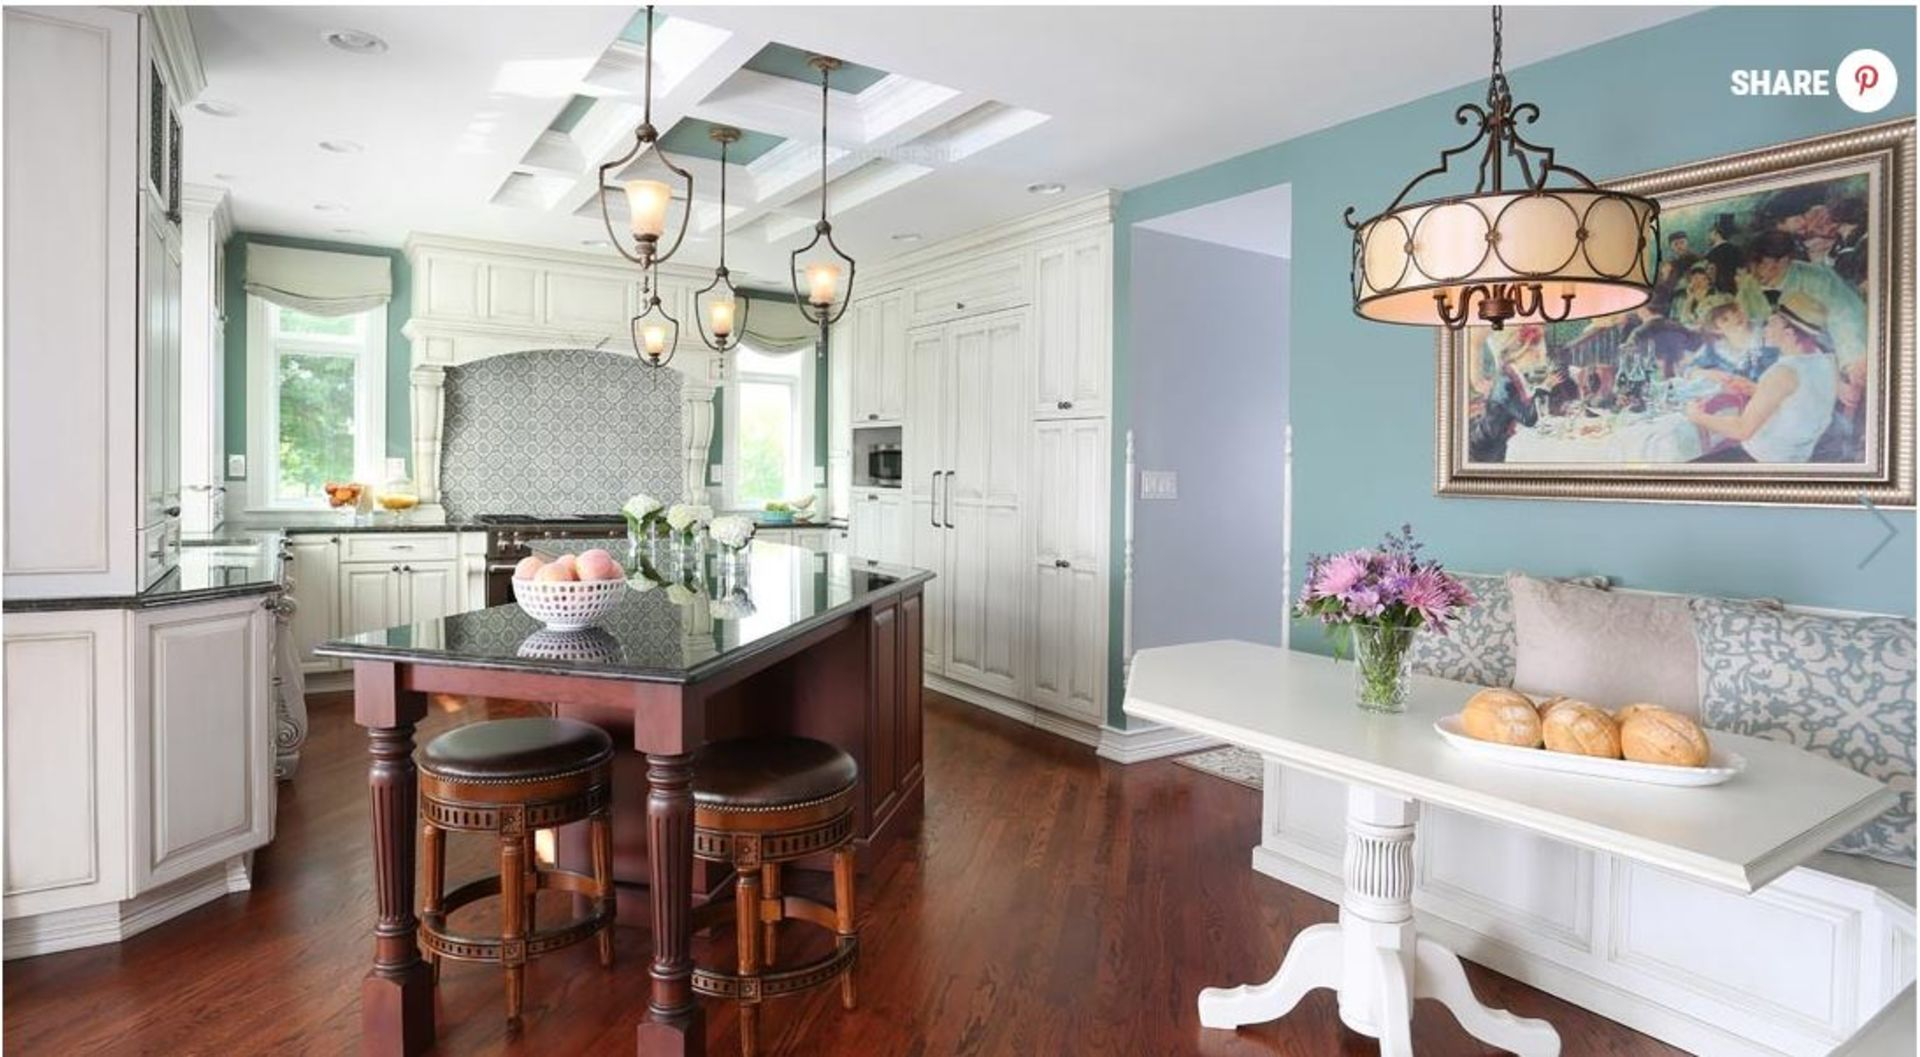 7 Cool Kitchen Trends We Love!